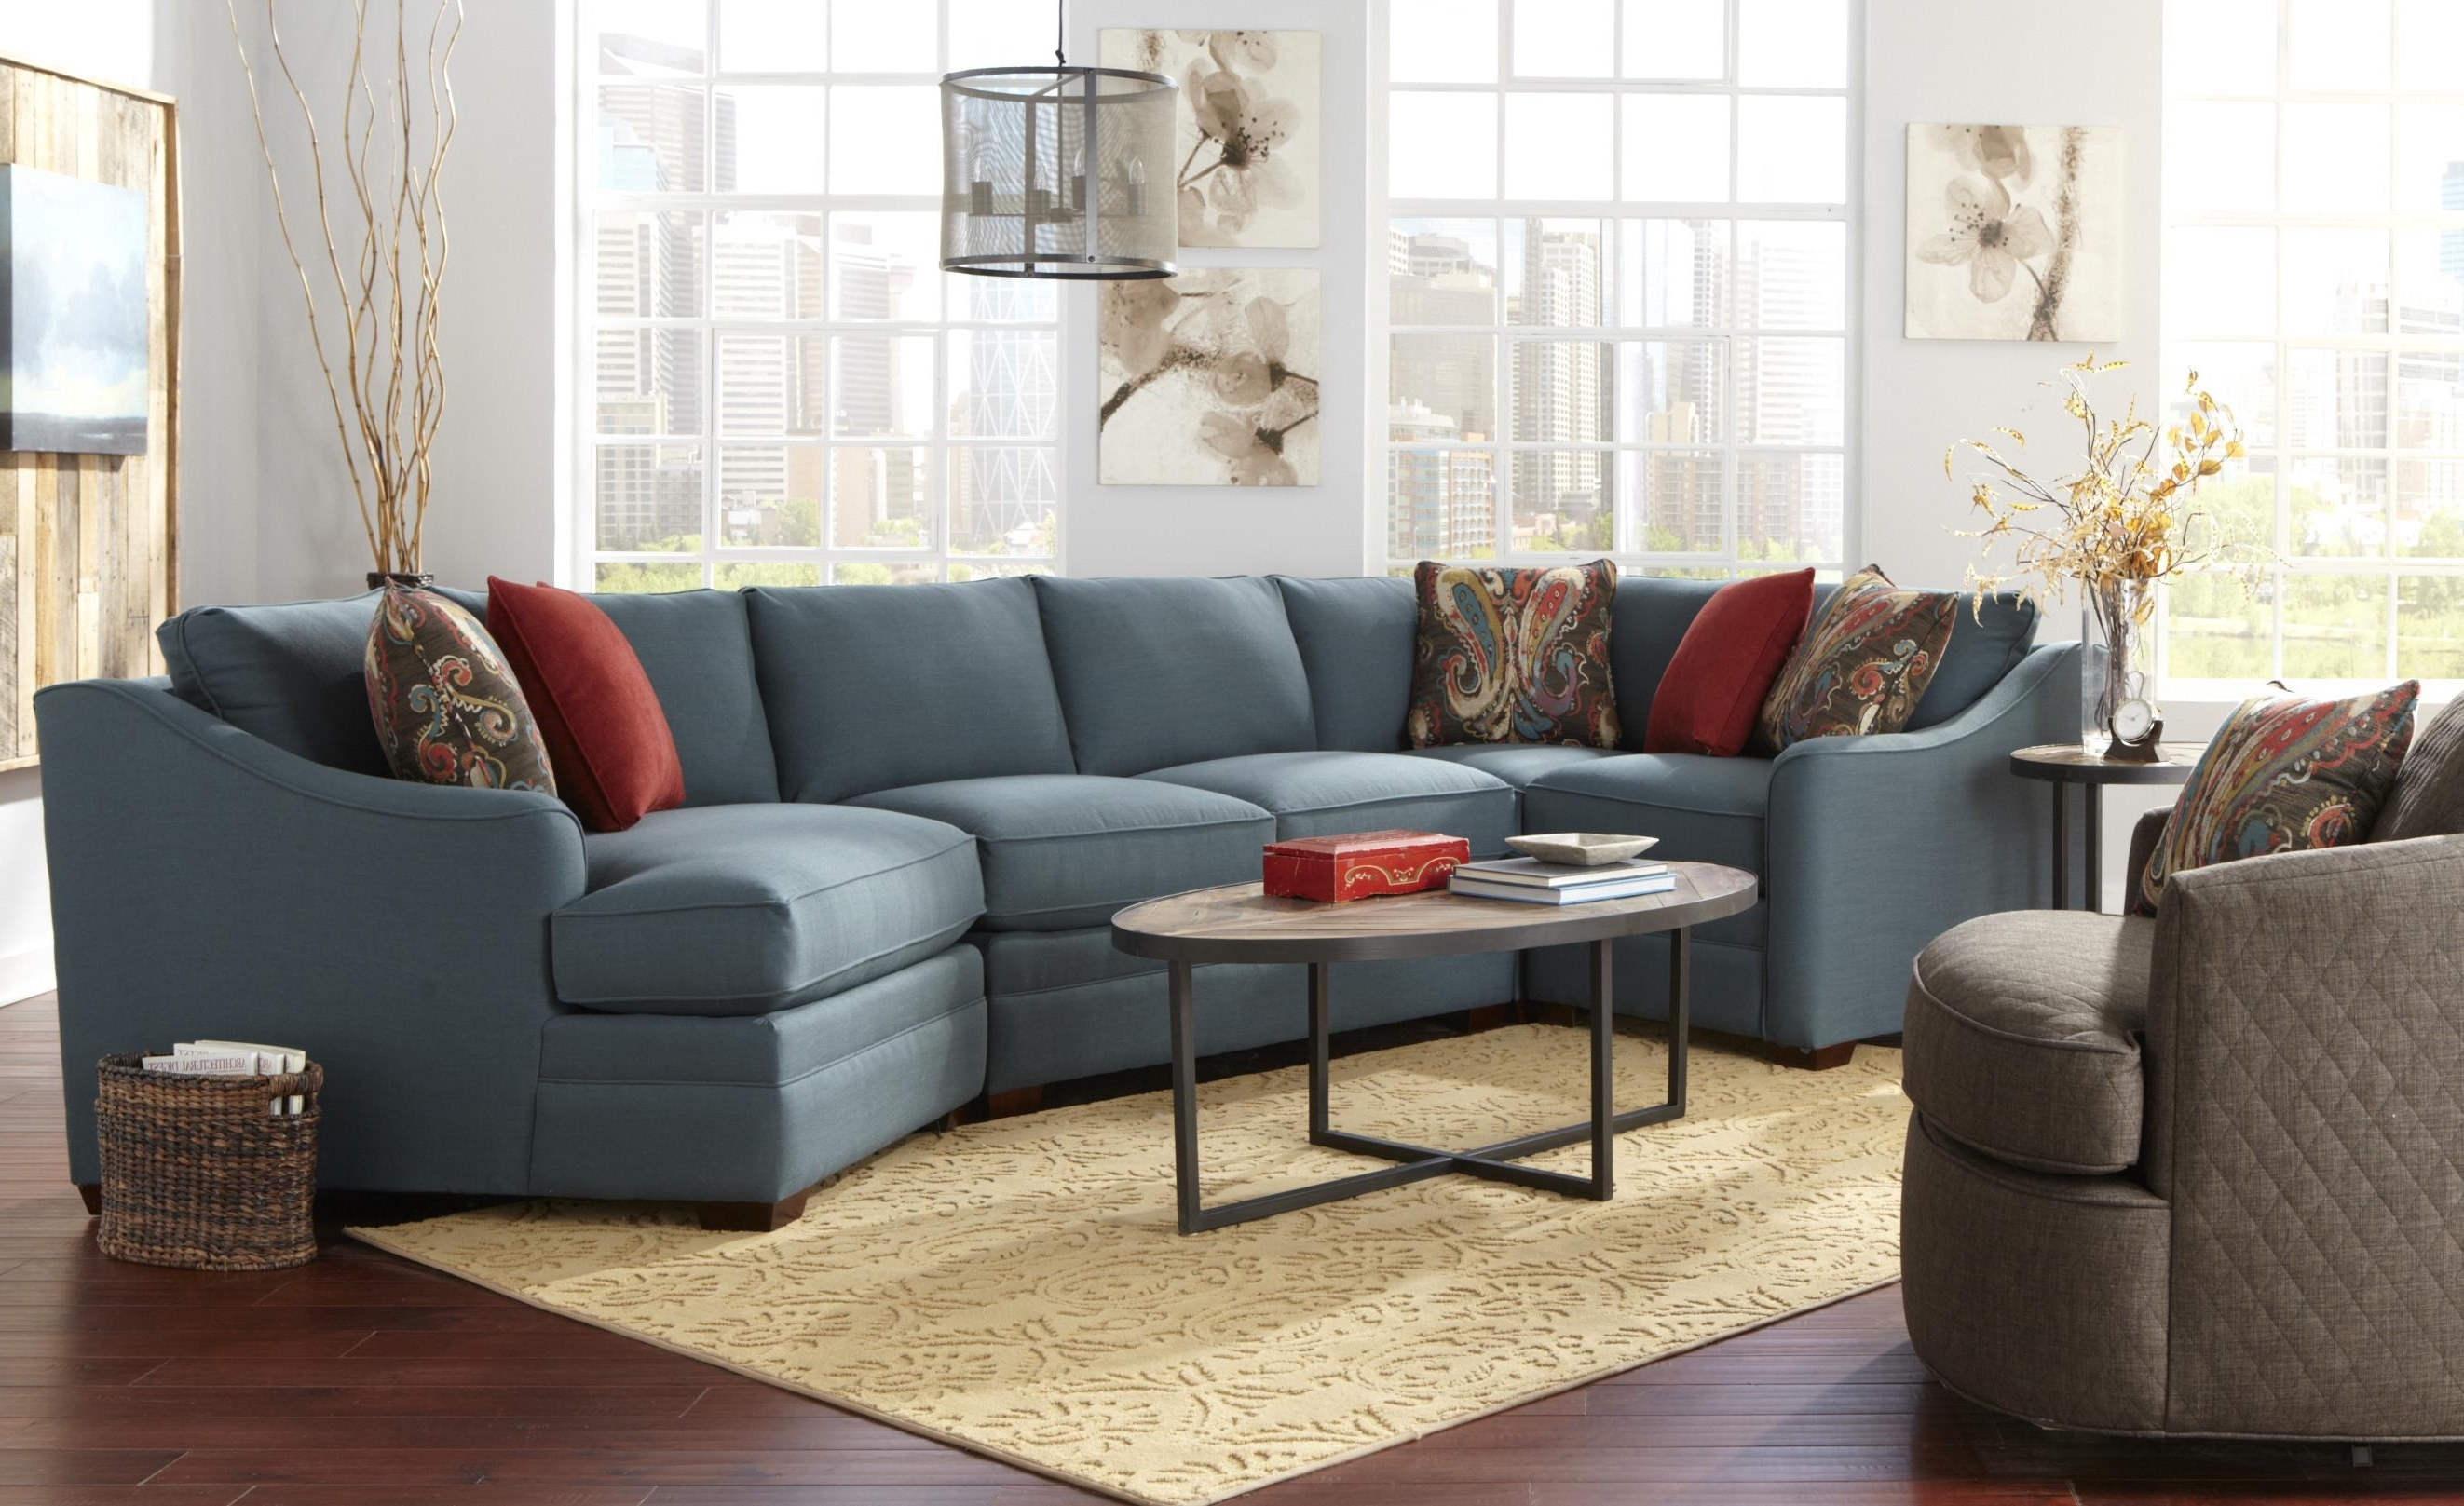 Newest Killeen Tx Sectional Sofas Intended For Craftmaster F9 Custom Collection <b>customizable</b> 3 Piece (View 12 of 20)